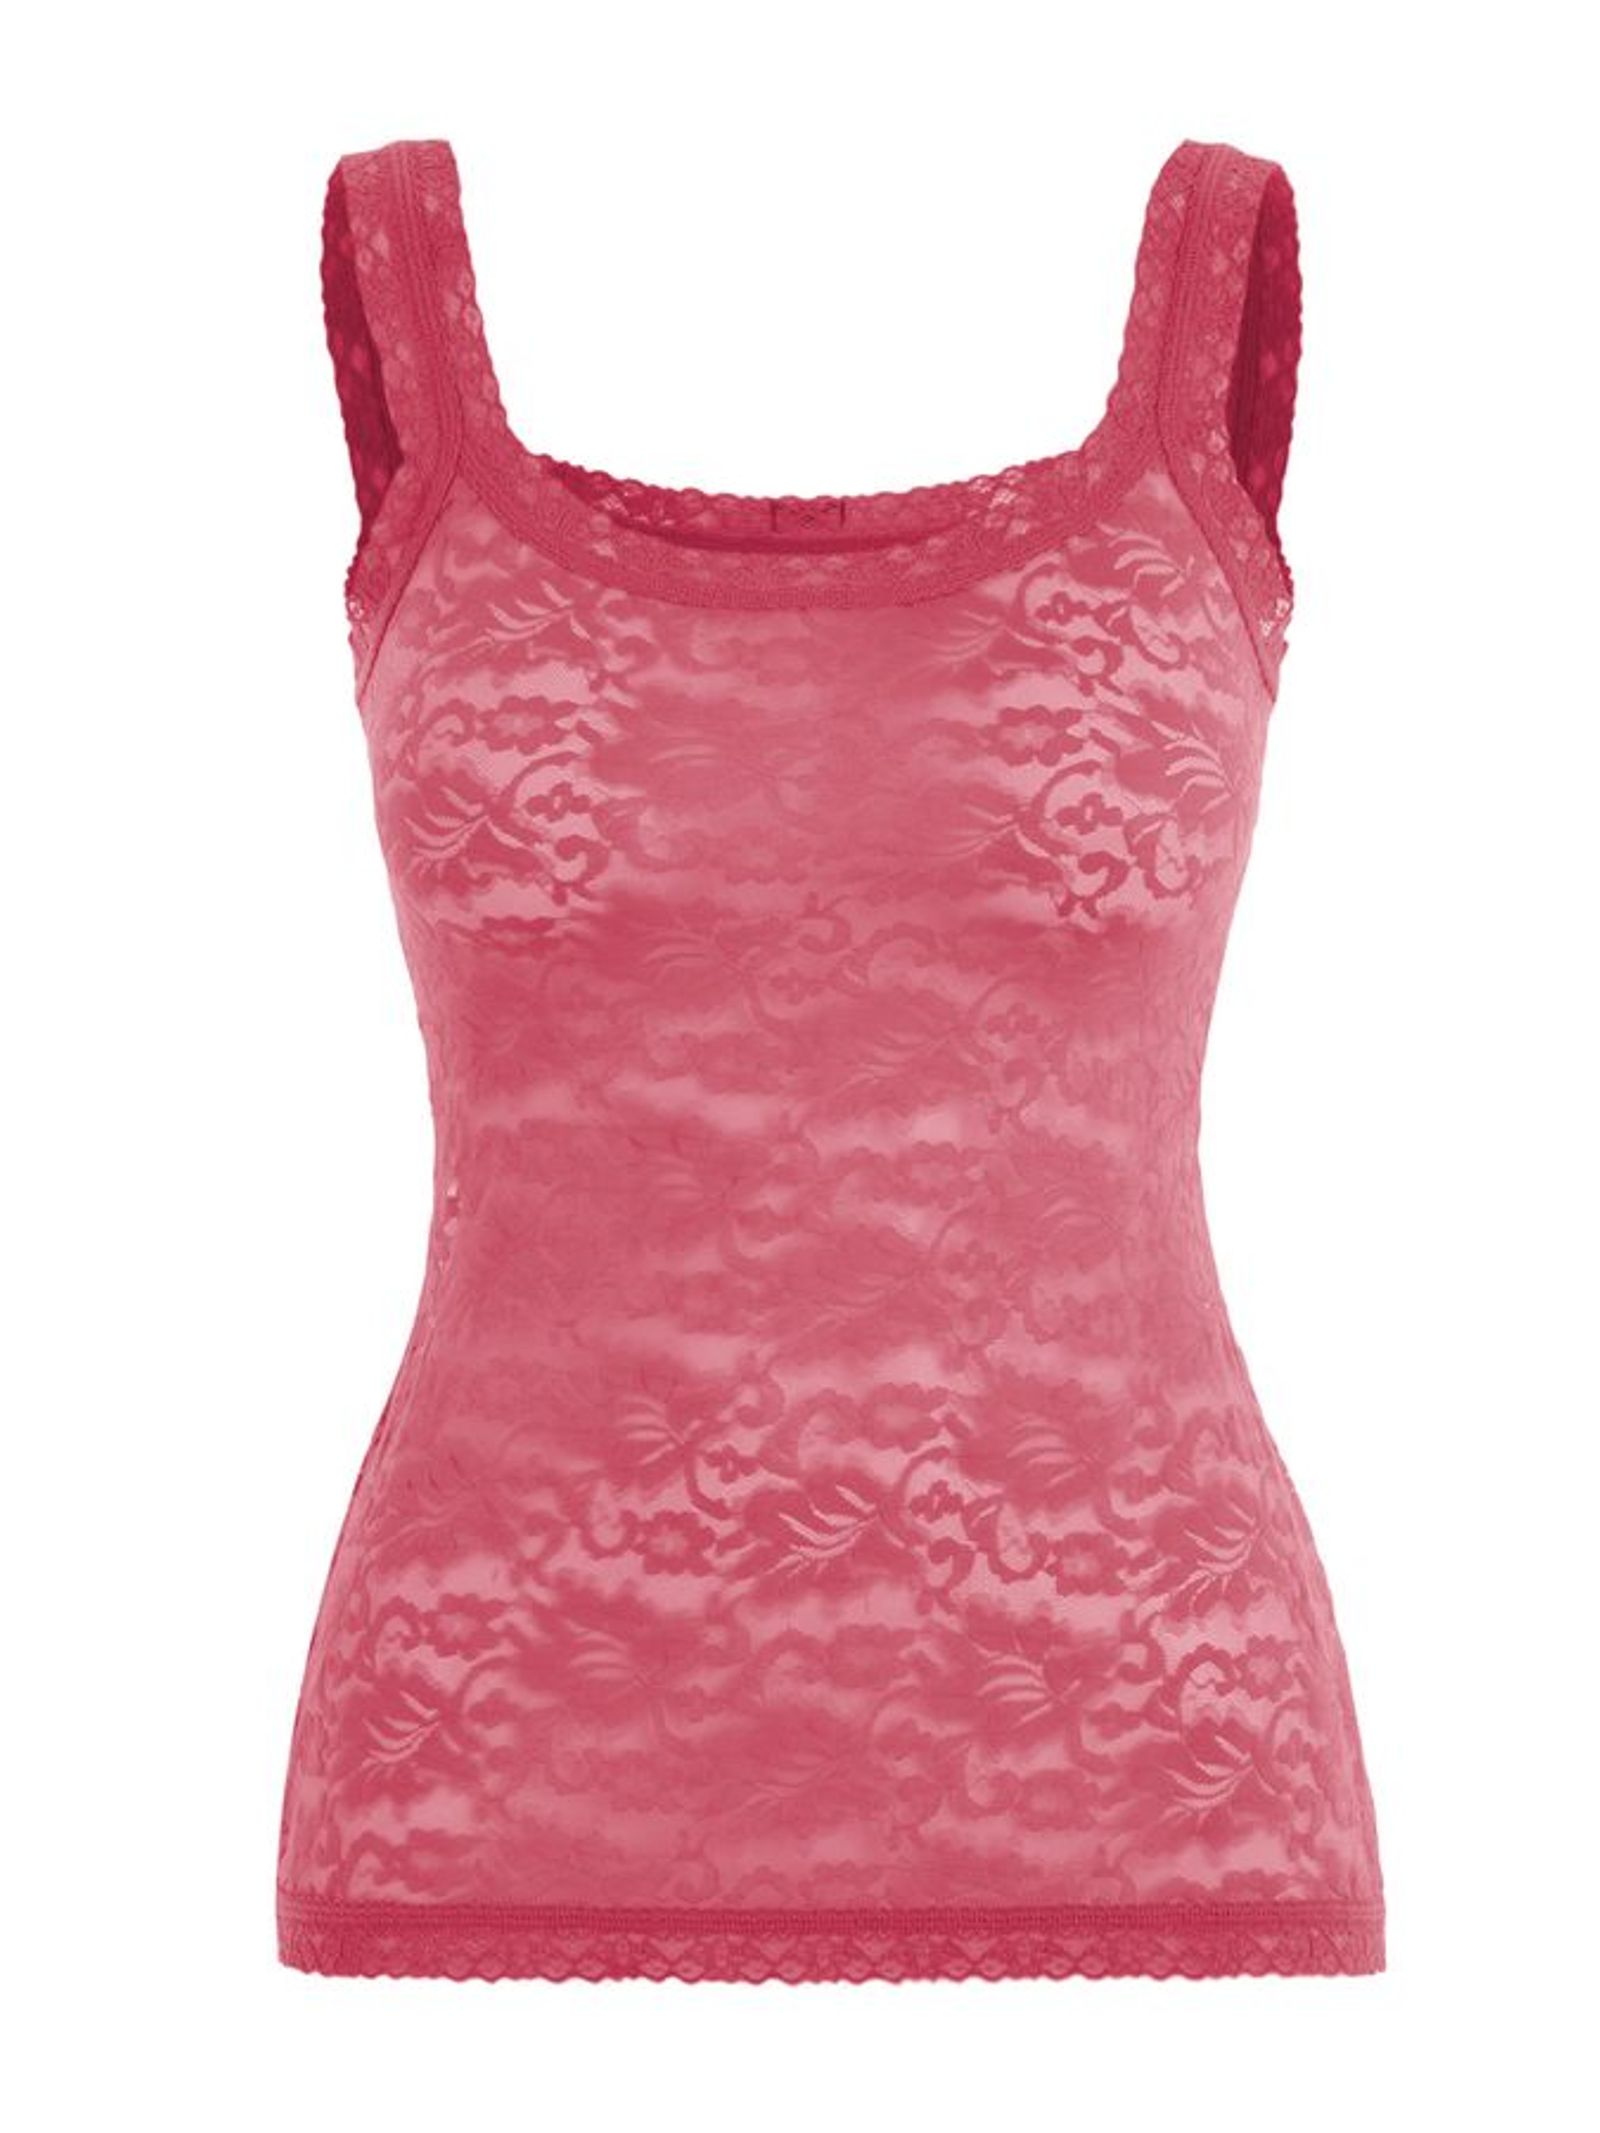 15010058_441_1-TOP-SMG-RENDA-ANGEL-LACE